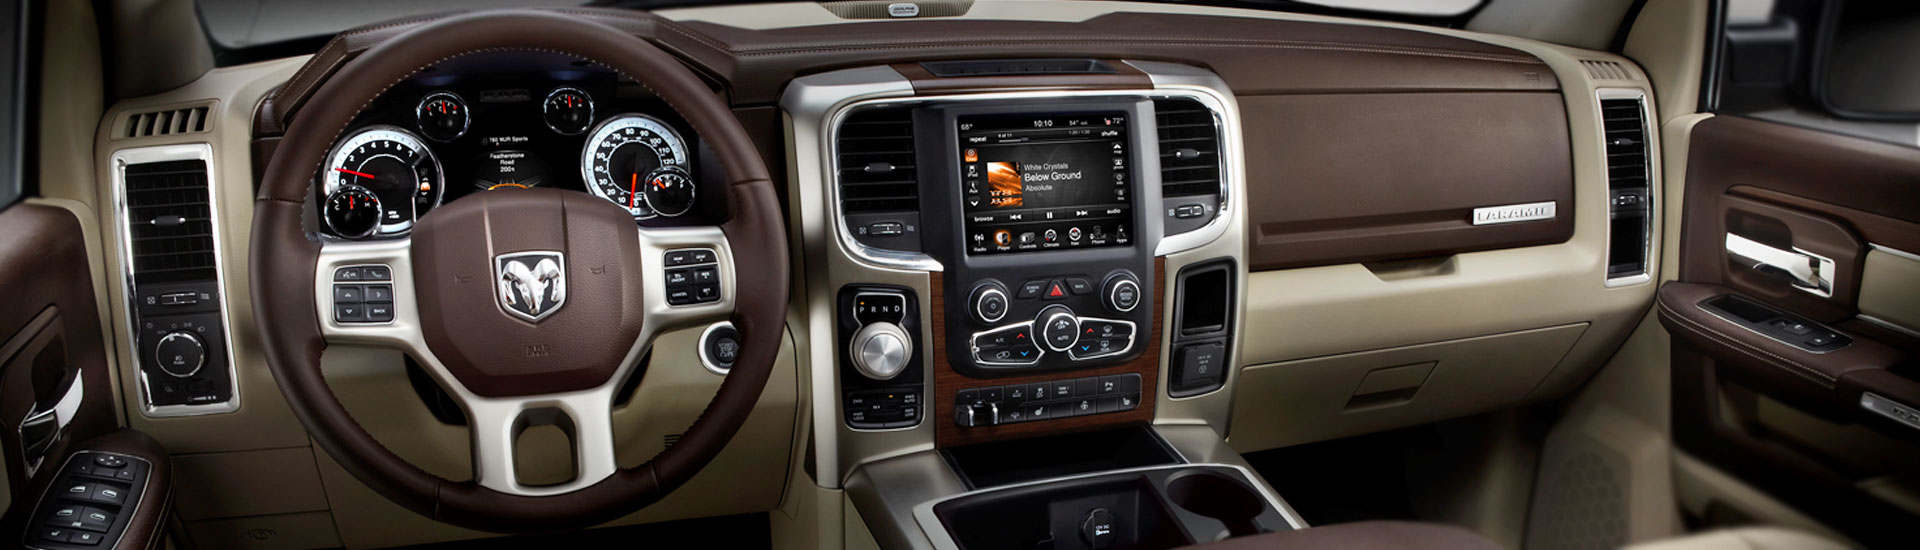 2012 Ram 2500 Custom Dash Kits